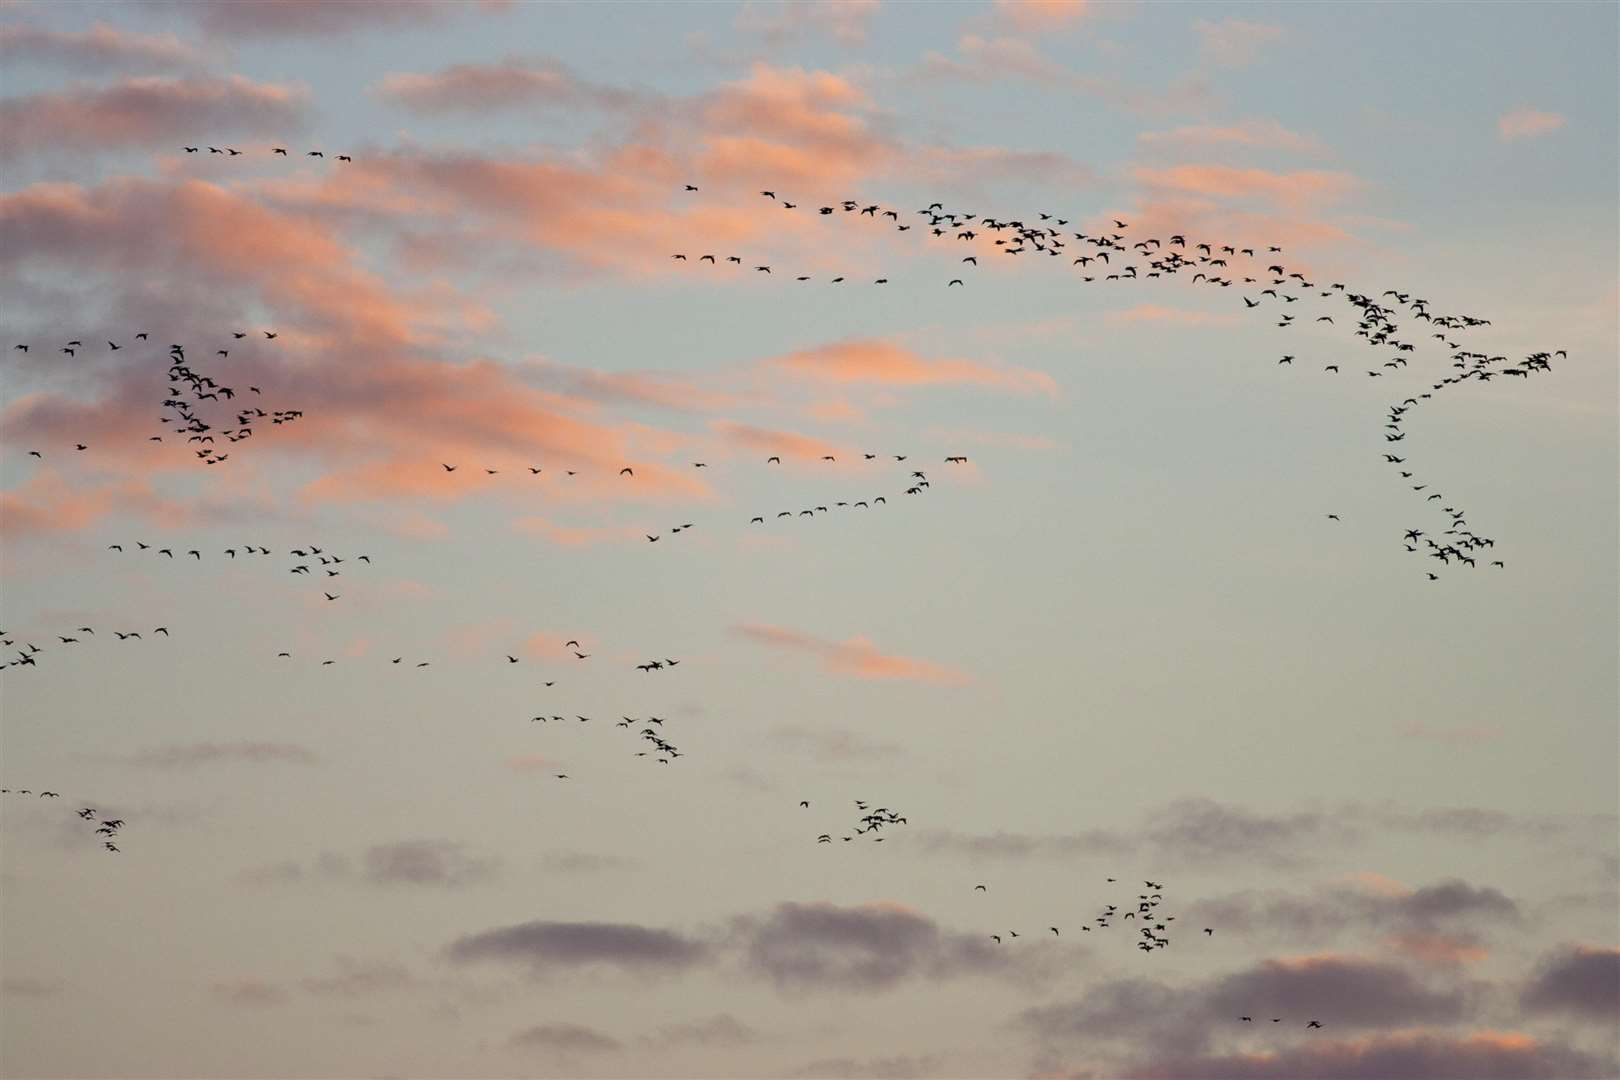 A flock of pink footed geese (Anser brachyrhynchus) soars through the sky. Image by Guy Edwards/2020VISION. (6157100)